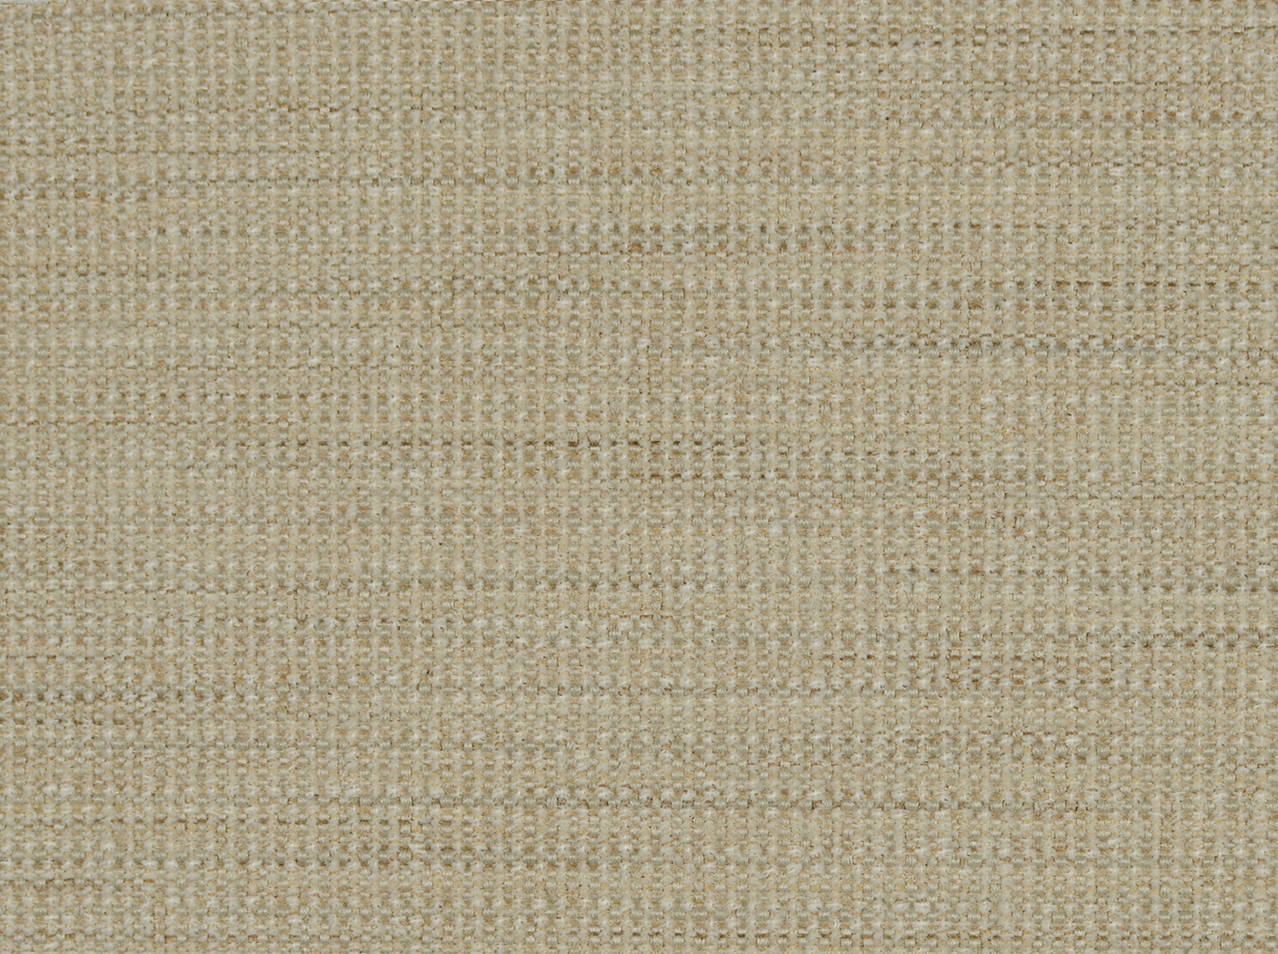 Covington Solids%20and%20Textures Woodlawn